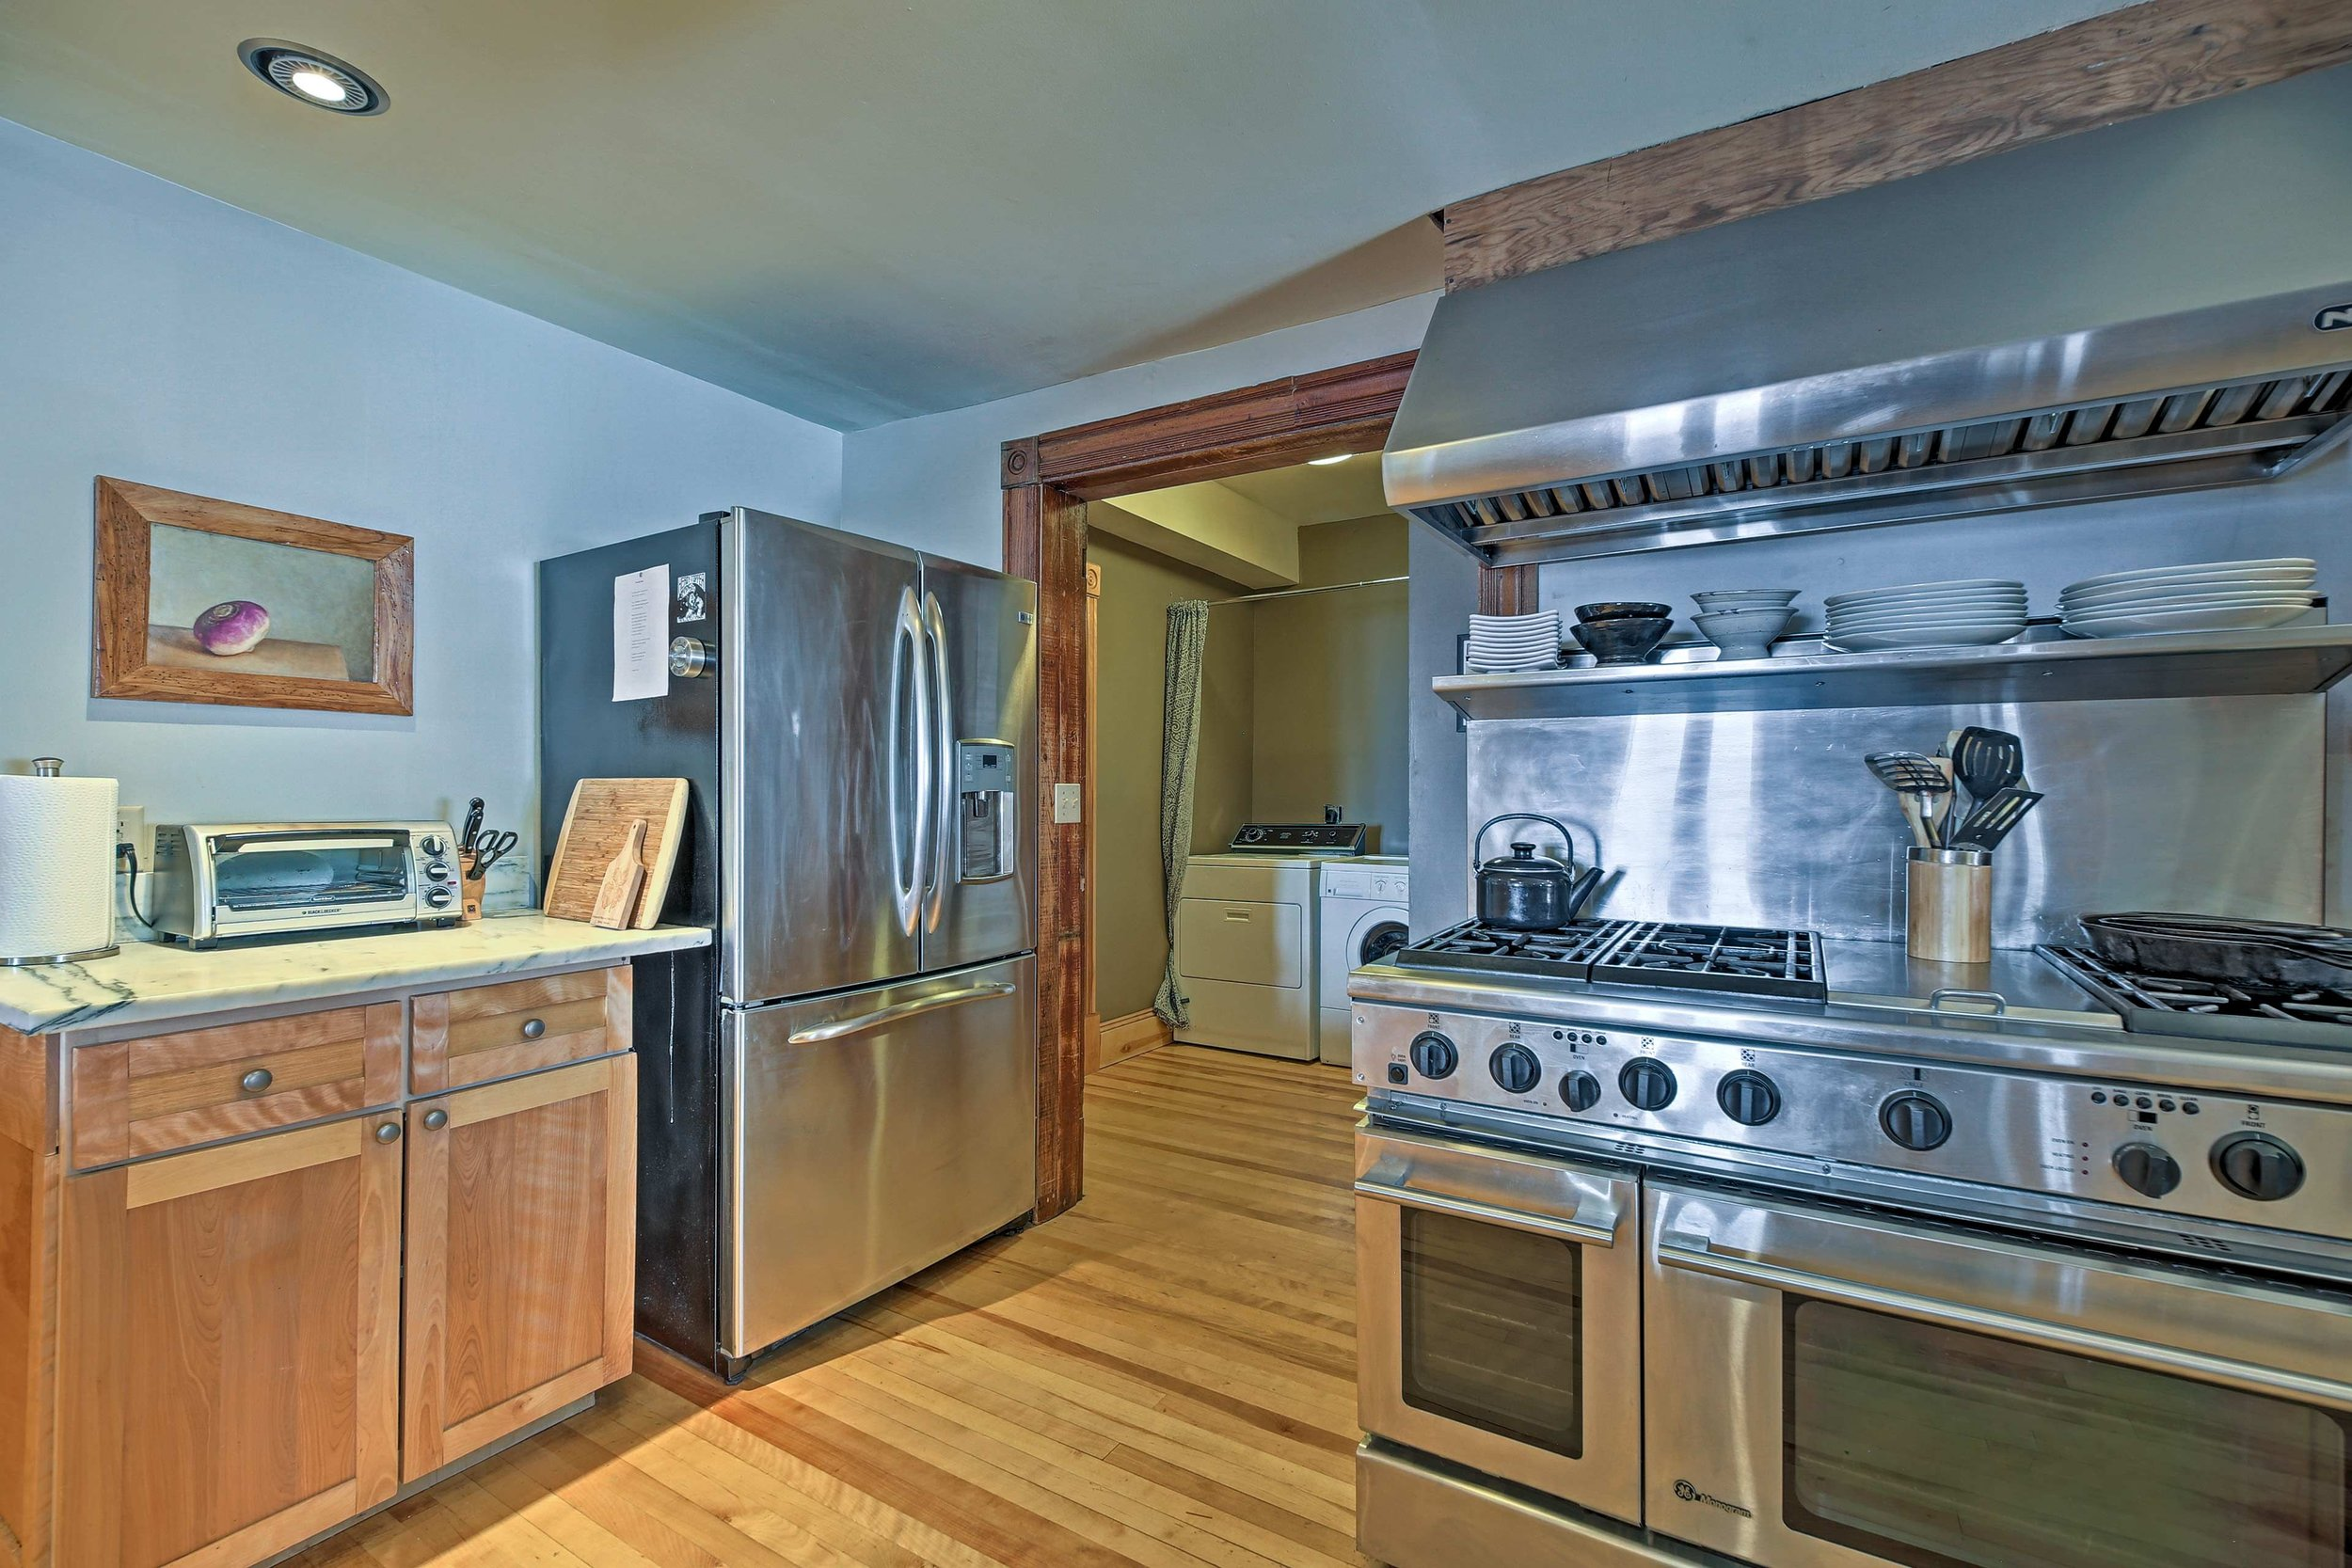 """A complete kitchen: Quality stainless appliances: 8 burner gas stove with hood, electric convection oven, 36"""" refrigerator, dishwasher, walk-in pantry, deep sink, 10 foot marble counter"""